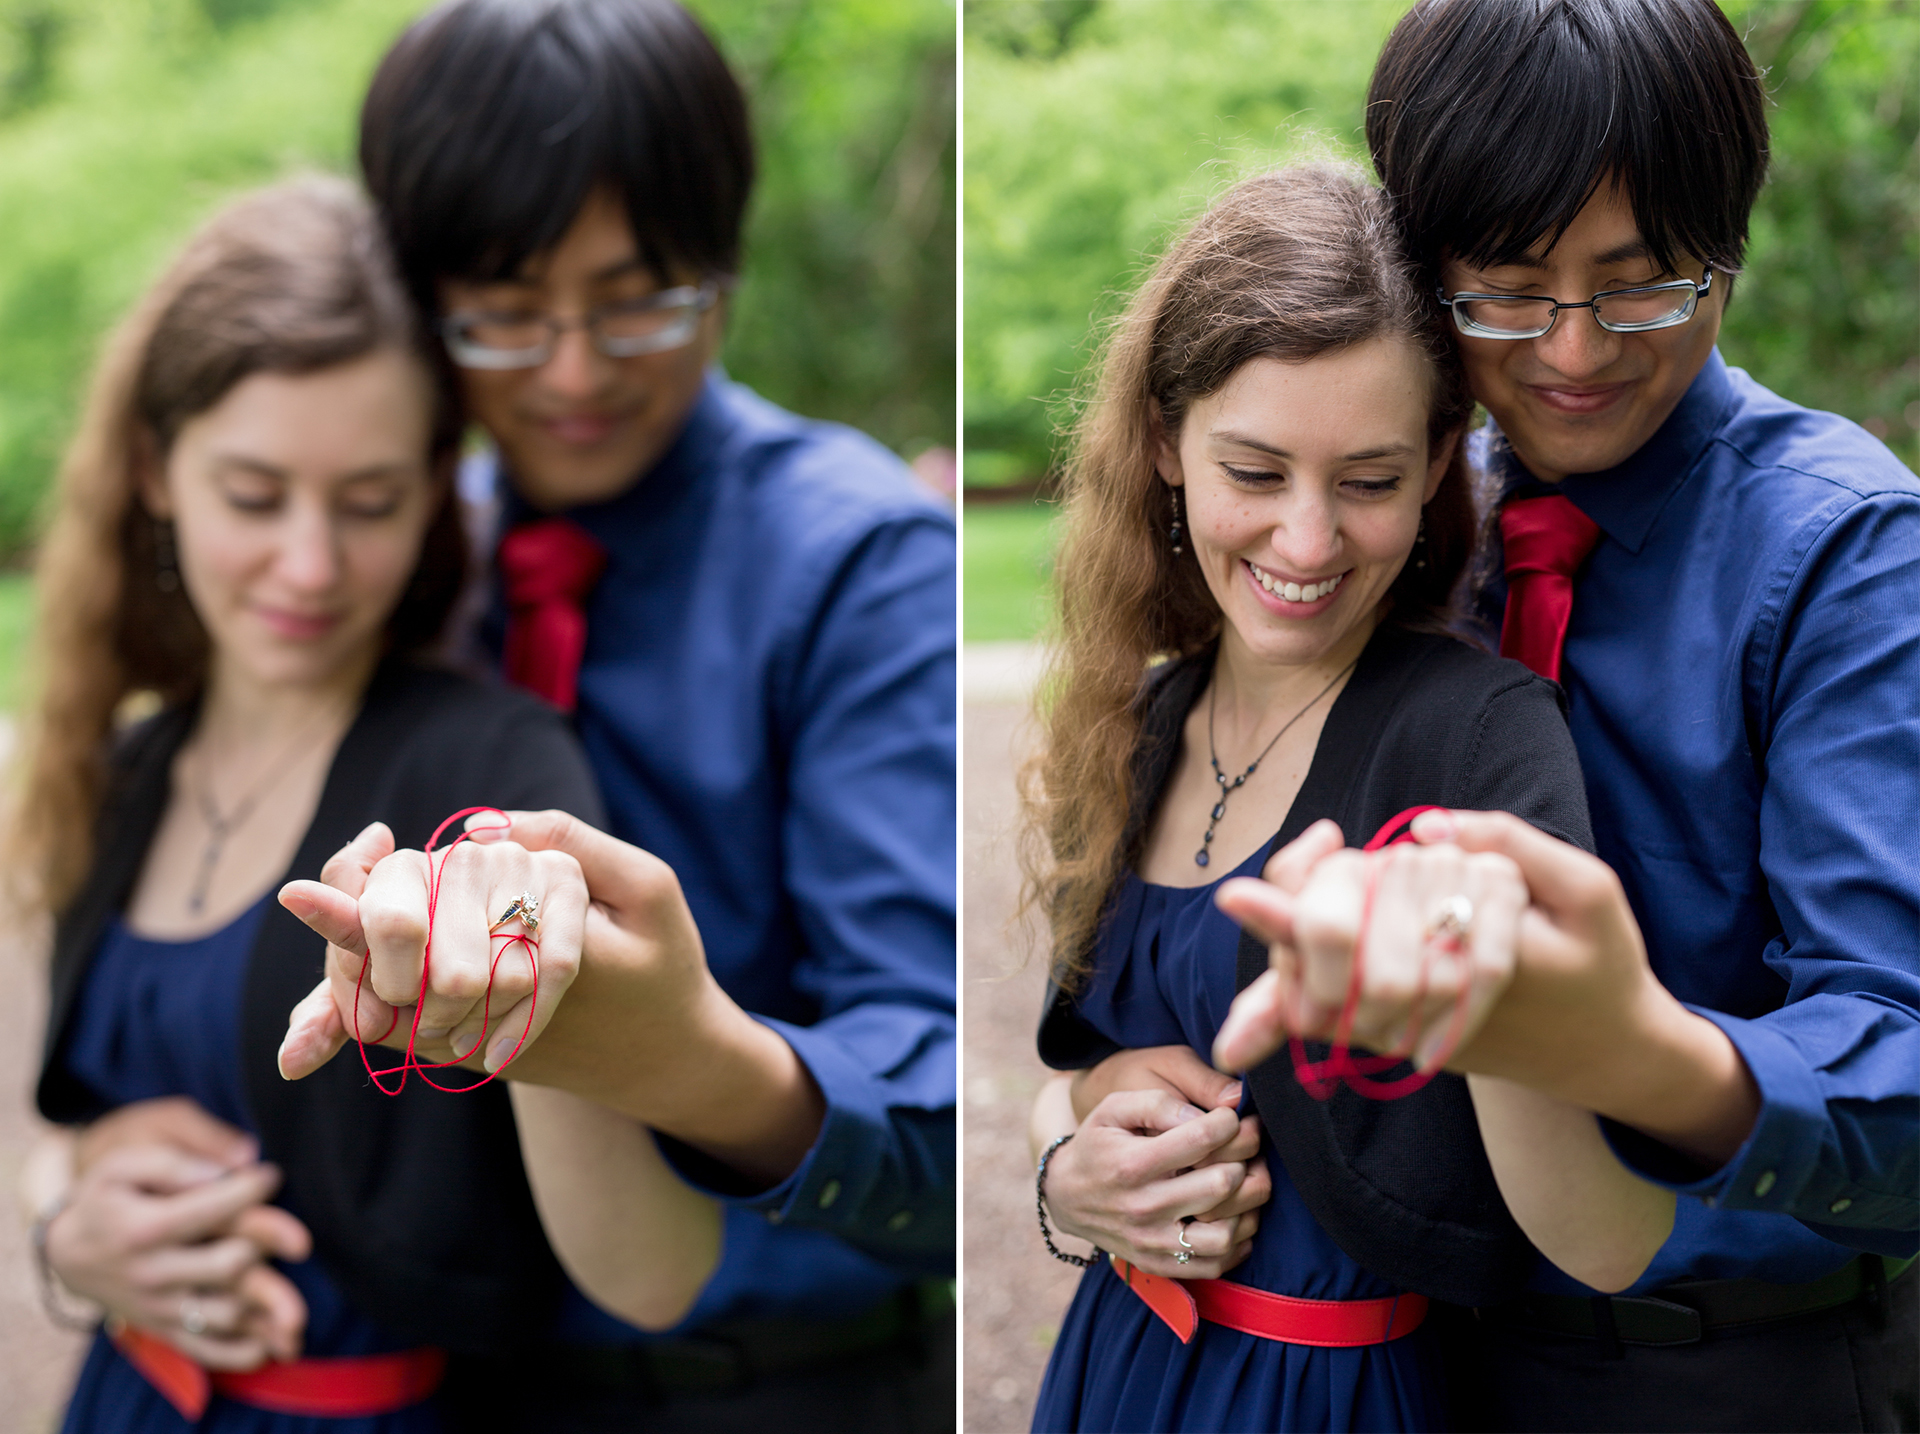 luthy botanical gardens greenhouse engagement biracial couple peoria centrail illinois wedding photographer photographers bloomington normal illinois valley lasalle peru ottawa-11.jpg